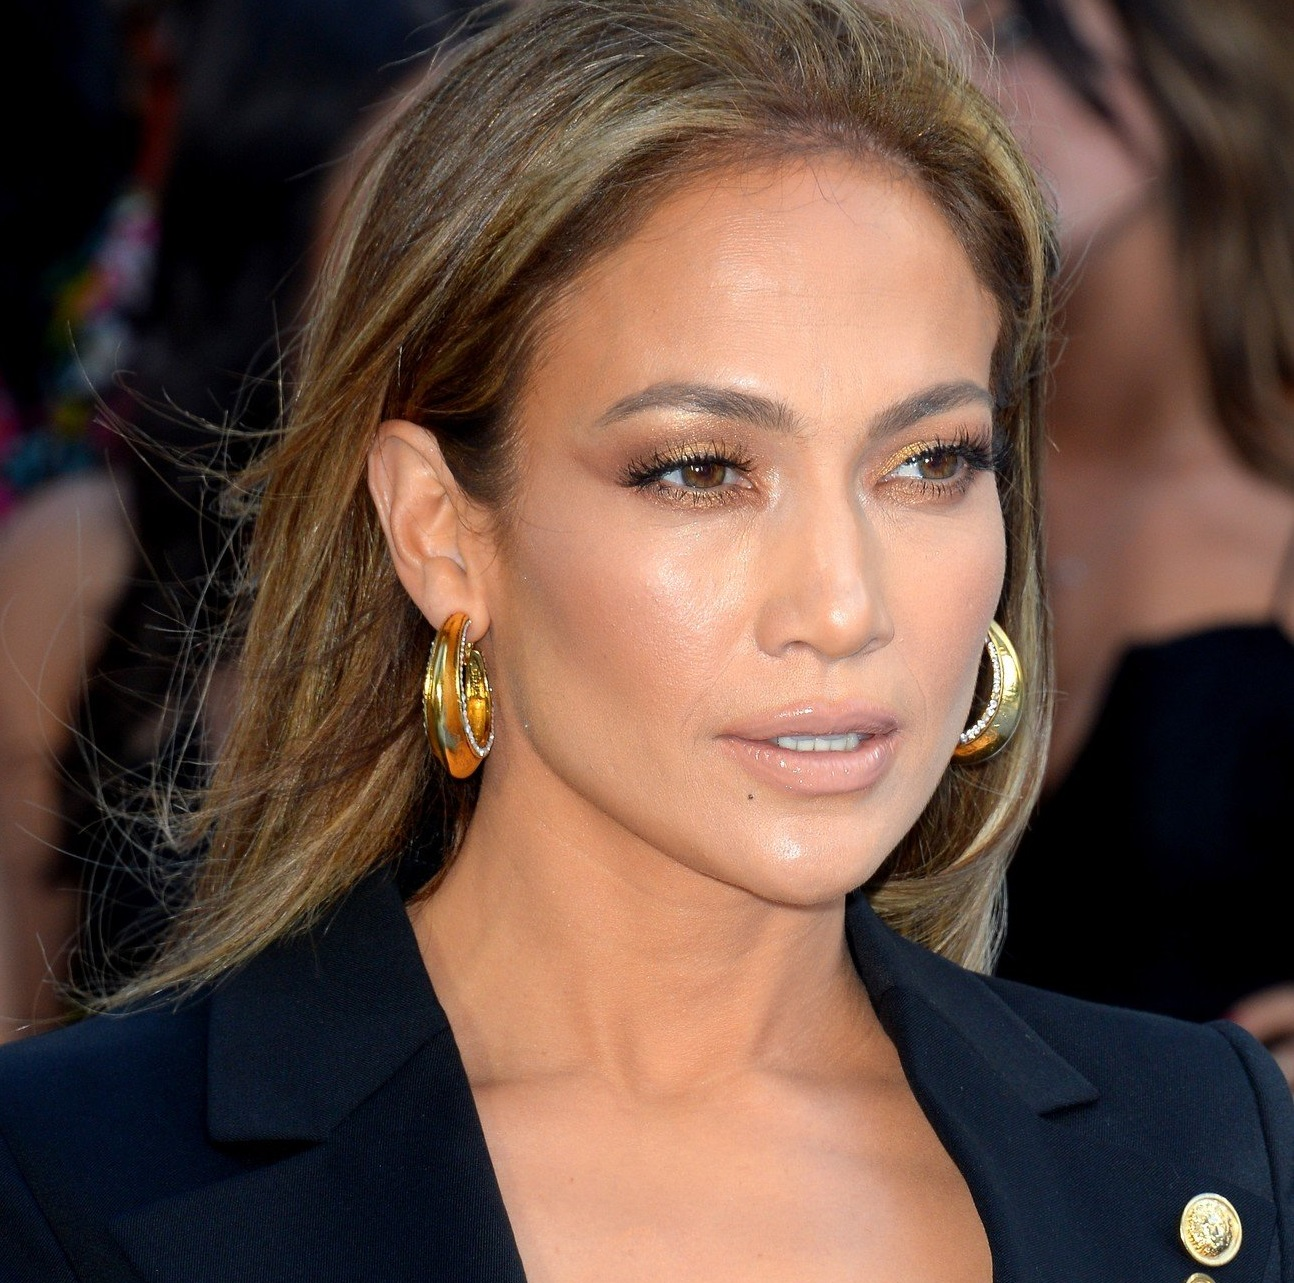 Actress and musician Jennifer Lopez arrives for the MTV Movie Awards at Nokia Theatre L.A. Live in Los Angeles on April 12, 2015. Photo by /UPI, Image: 238469953, License: Rights-managed, Restrictions: , Model Release: no, Credit line: Profimedia, UPI